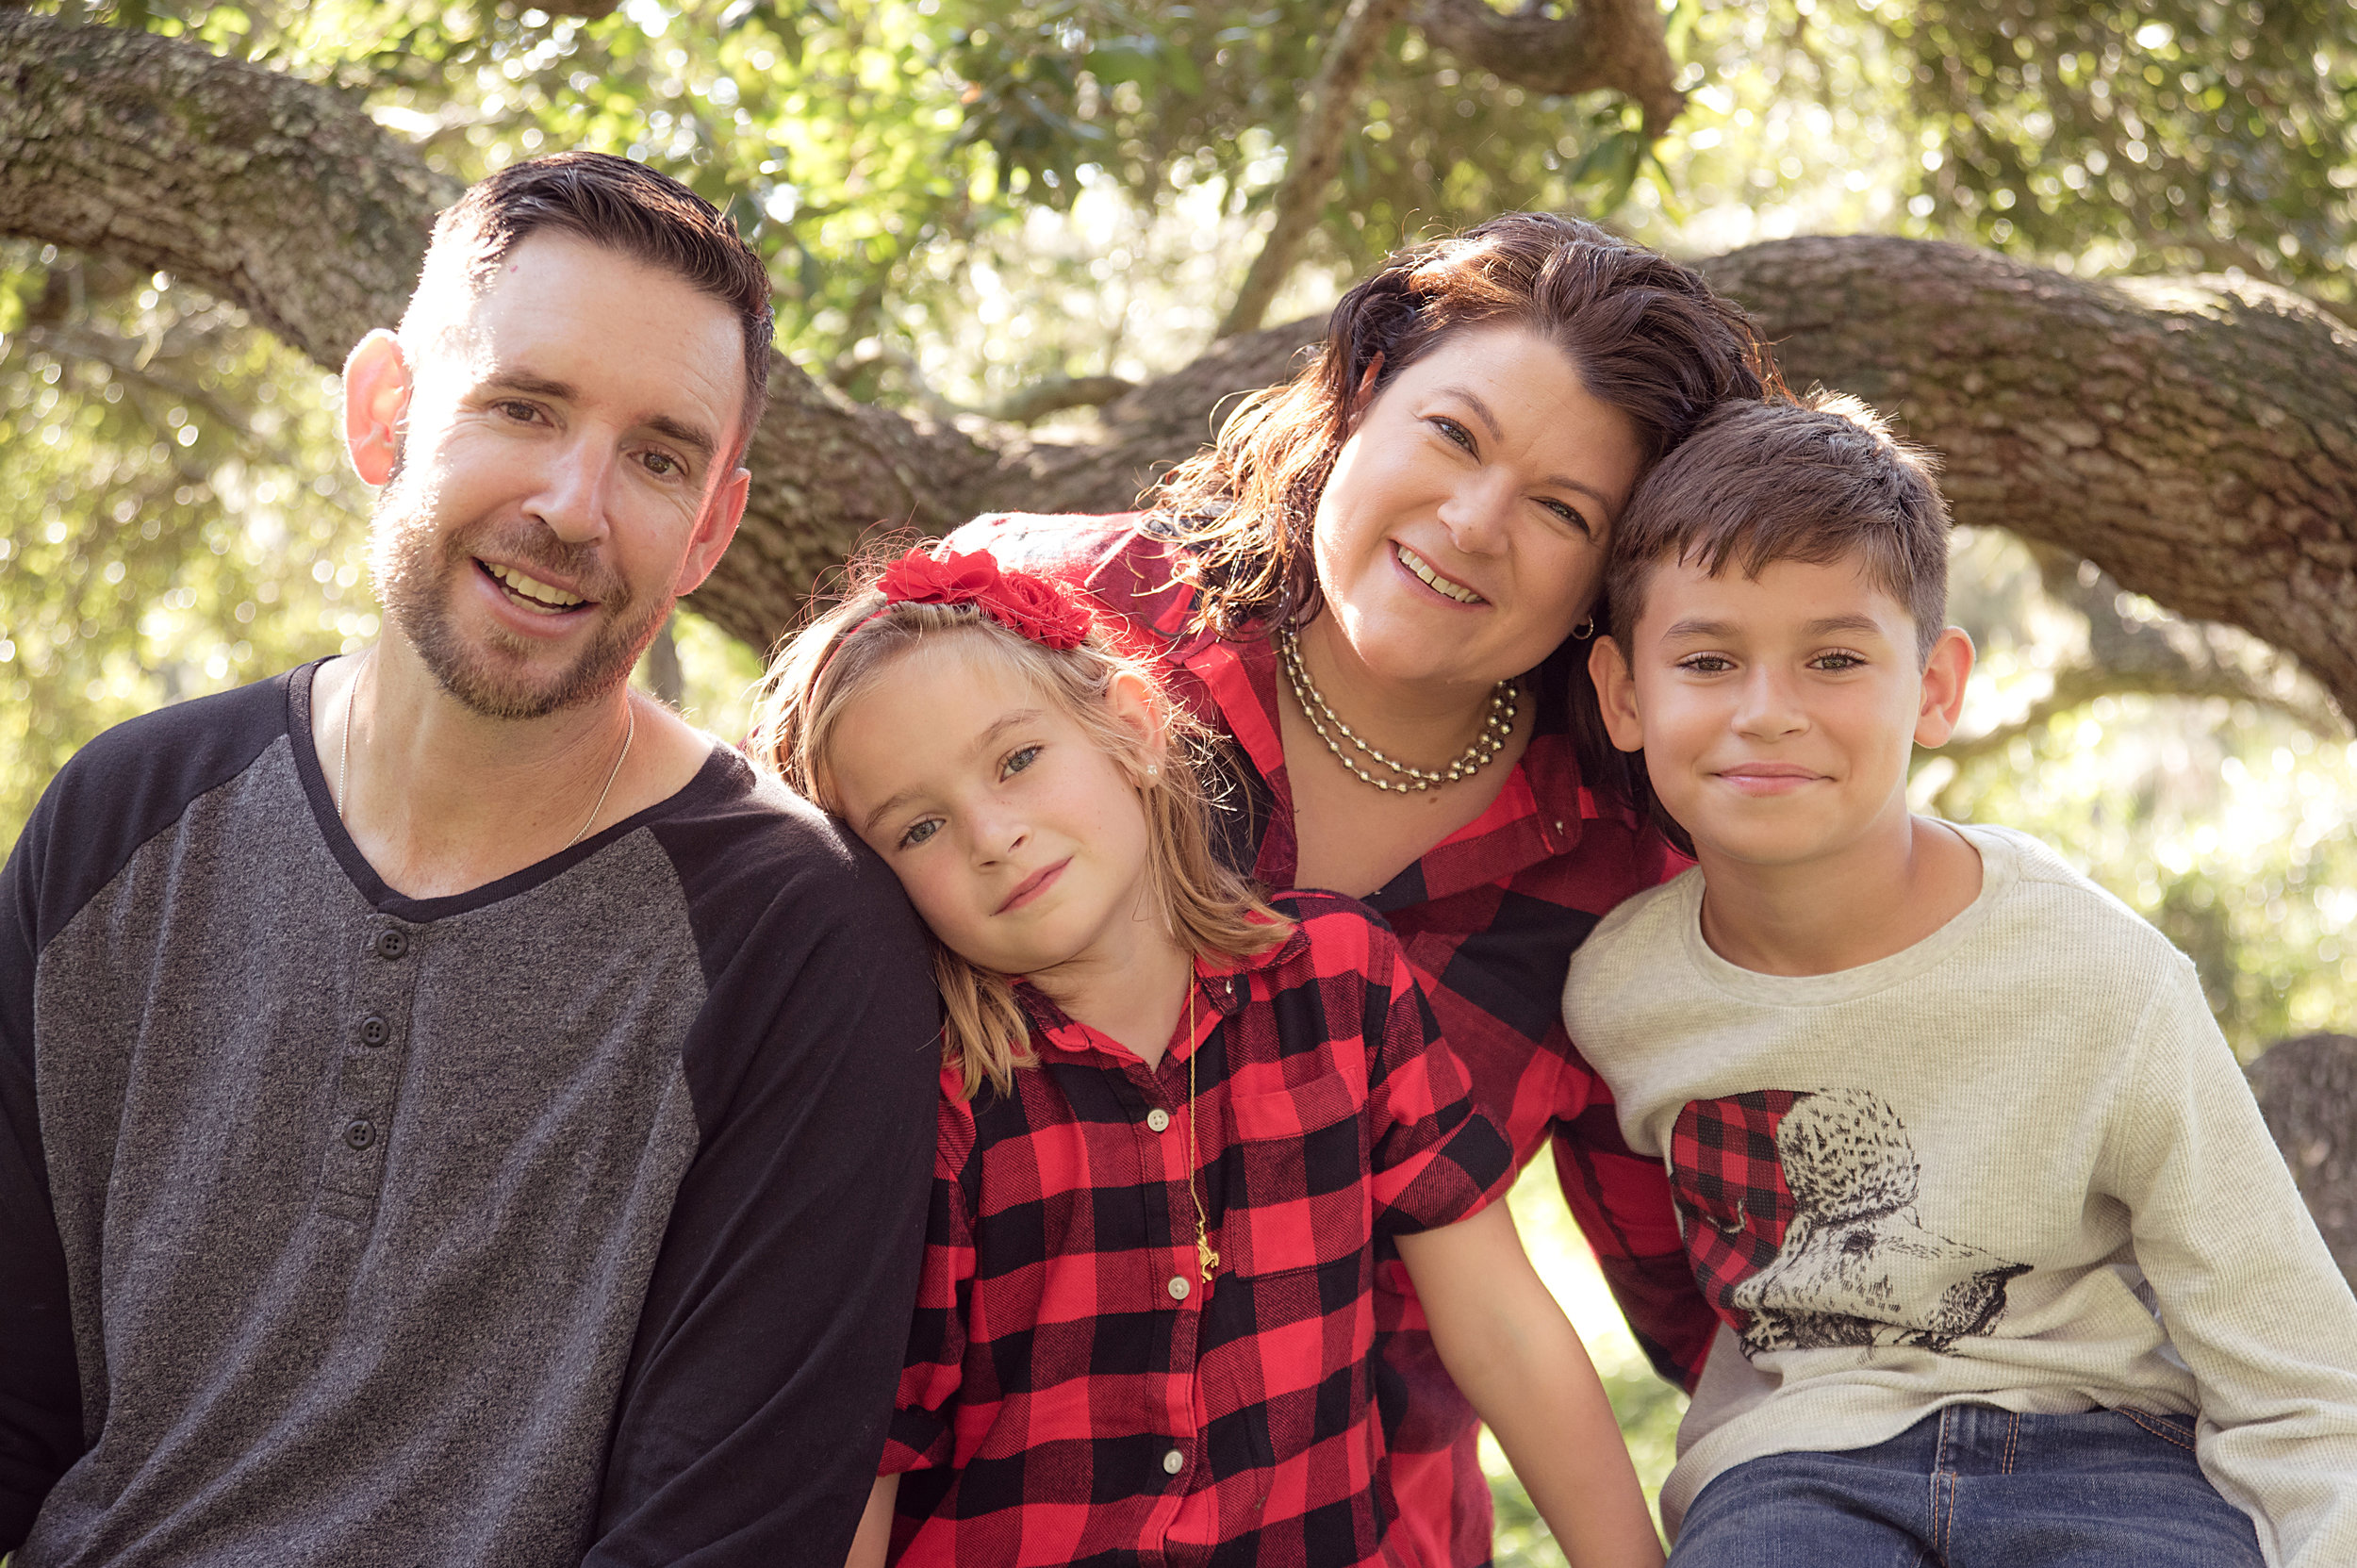 The Wagoner Family - October 14, 2018 - Philippe Park, Safety Harbor,